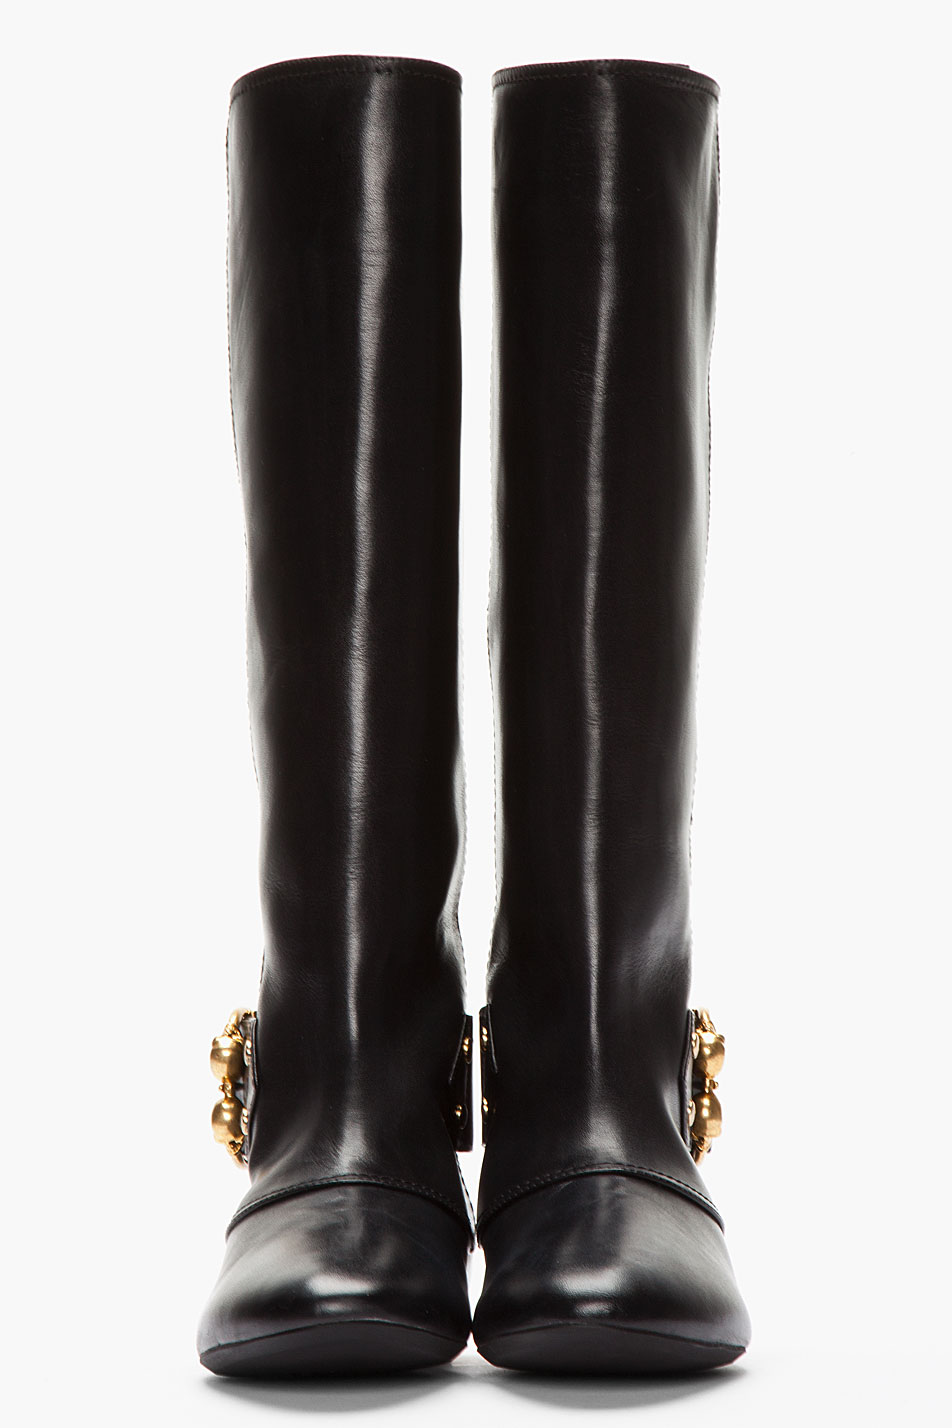 Alexander mcqueen Black Leather Double Skull Riding Boots in Black ...